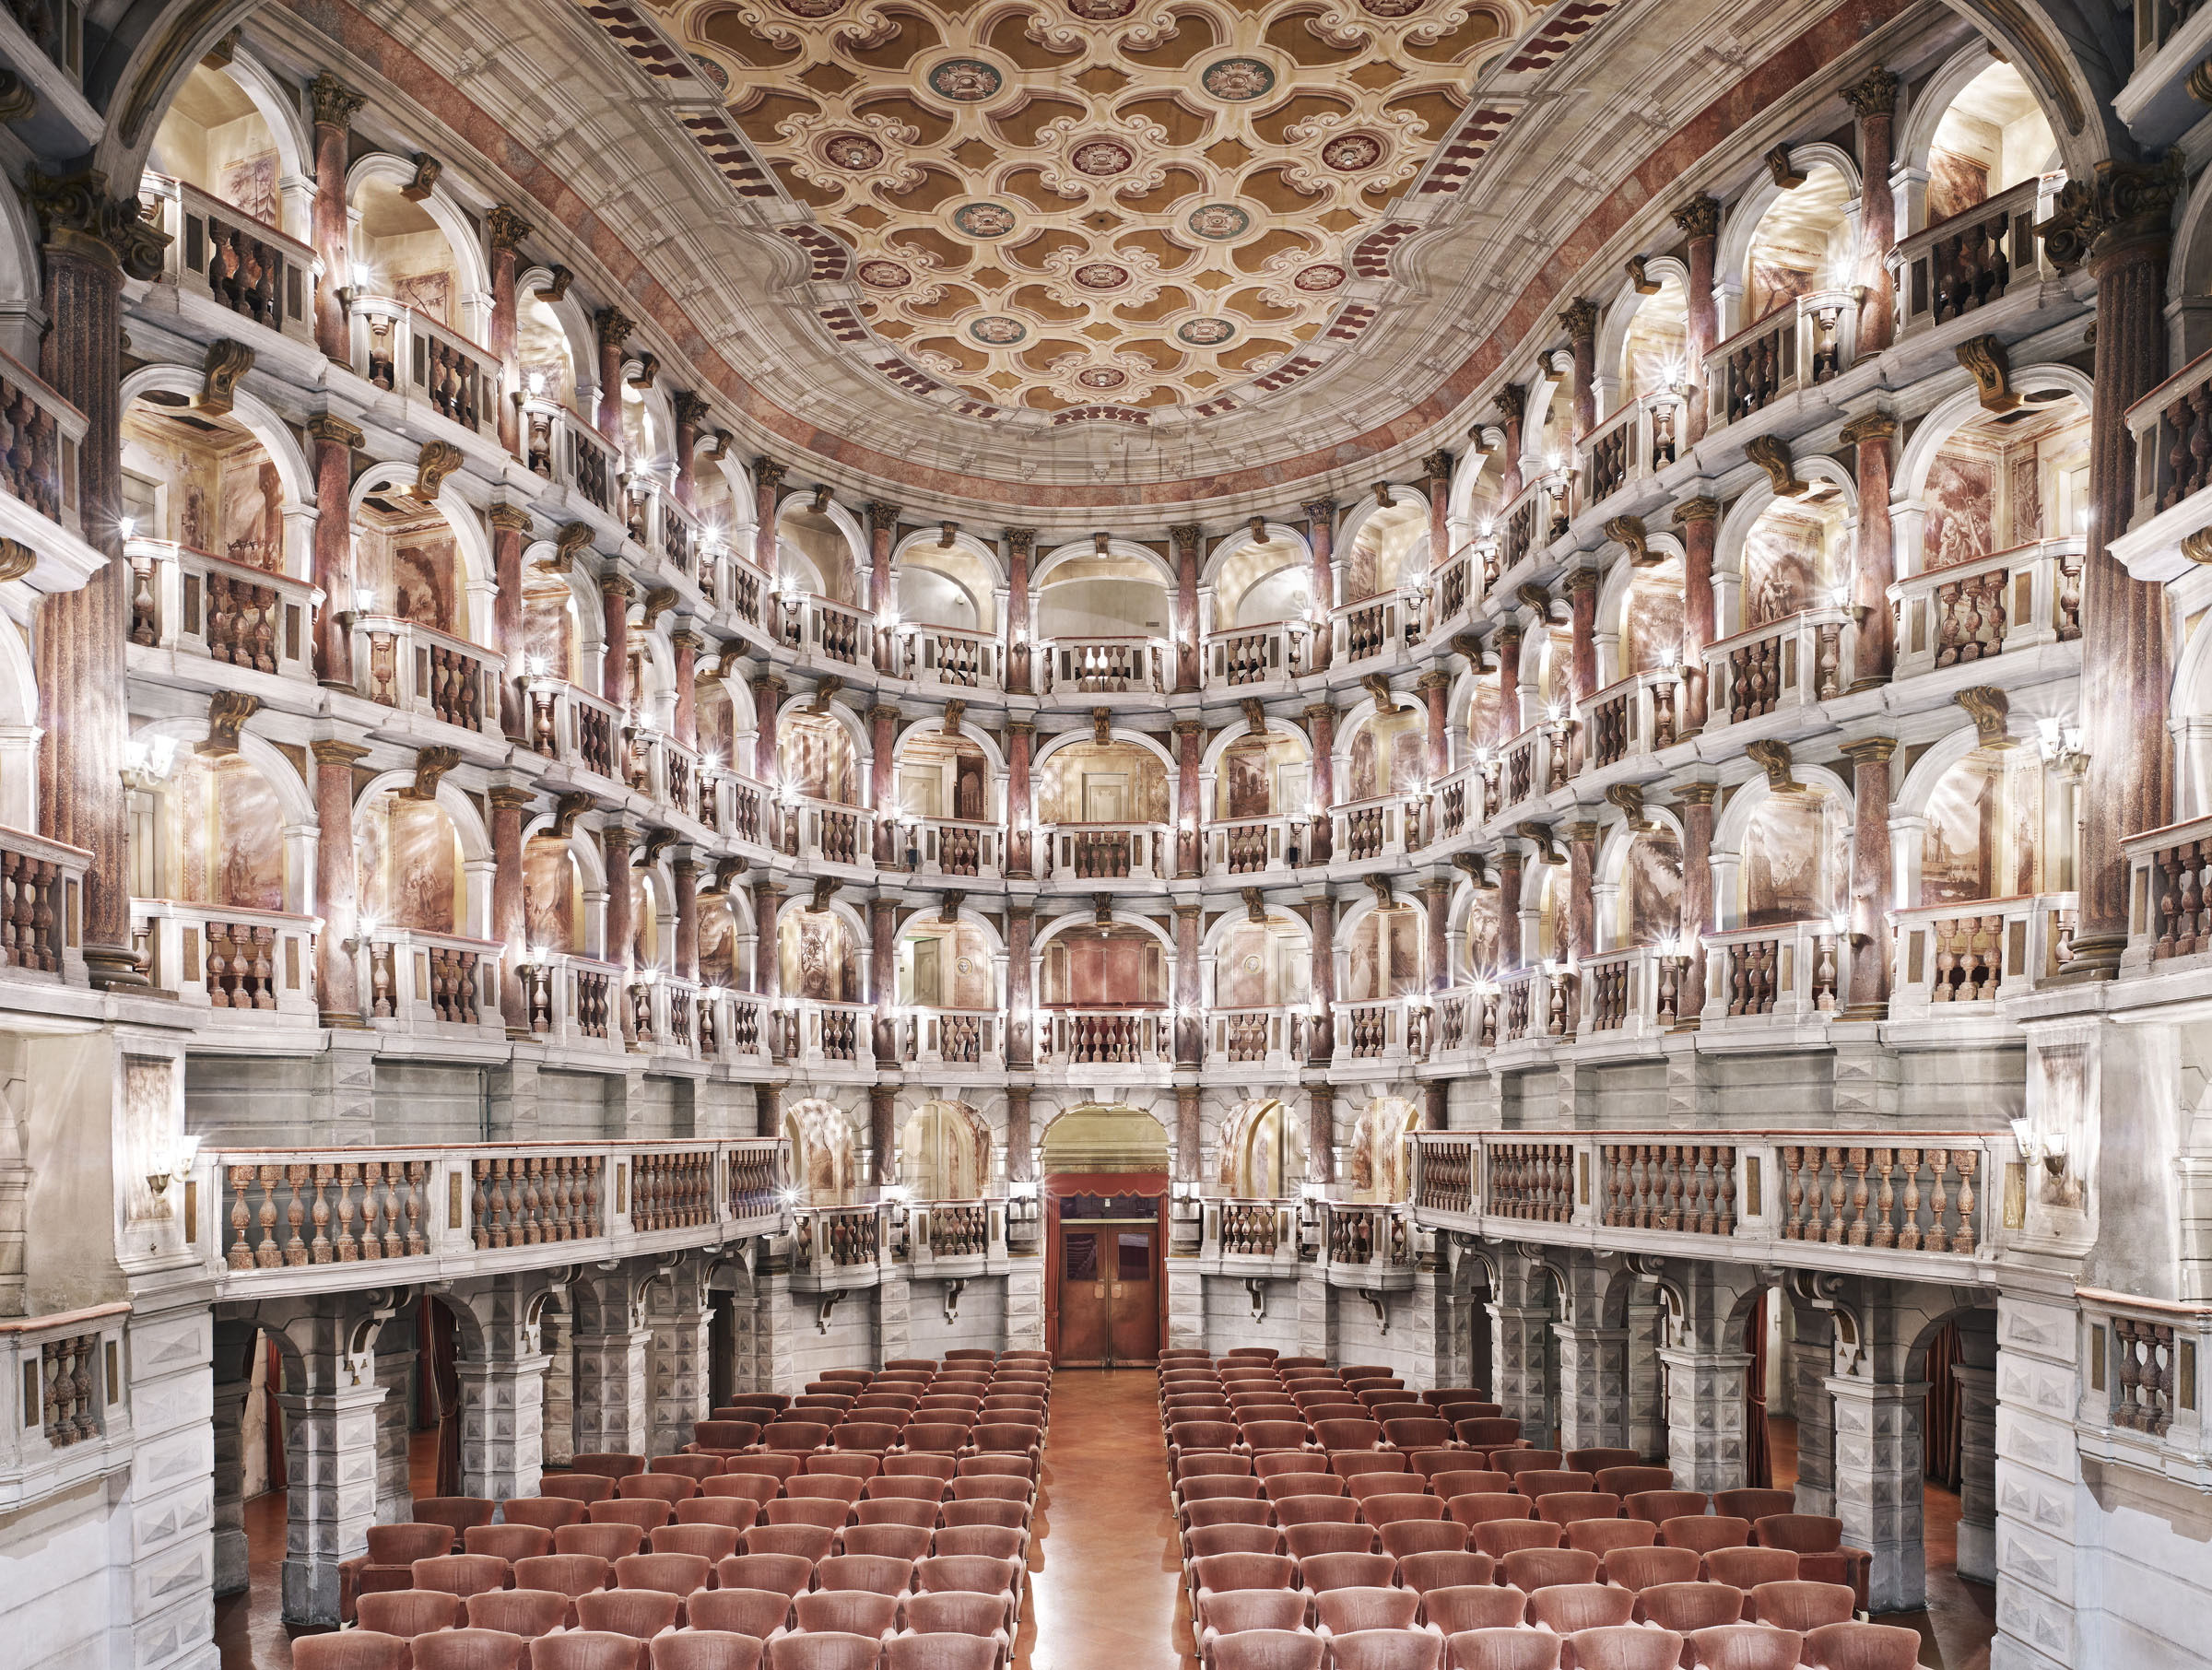 Candida Höfer, Mantova, Teatro Scientifico Bibiena , 2010, 180x225 cm © Candida Höfer